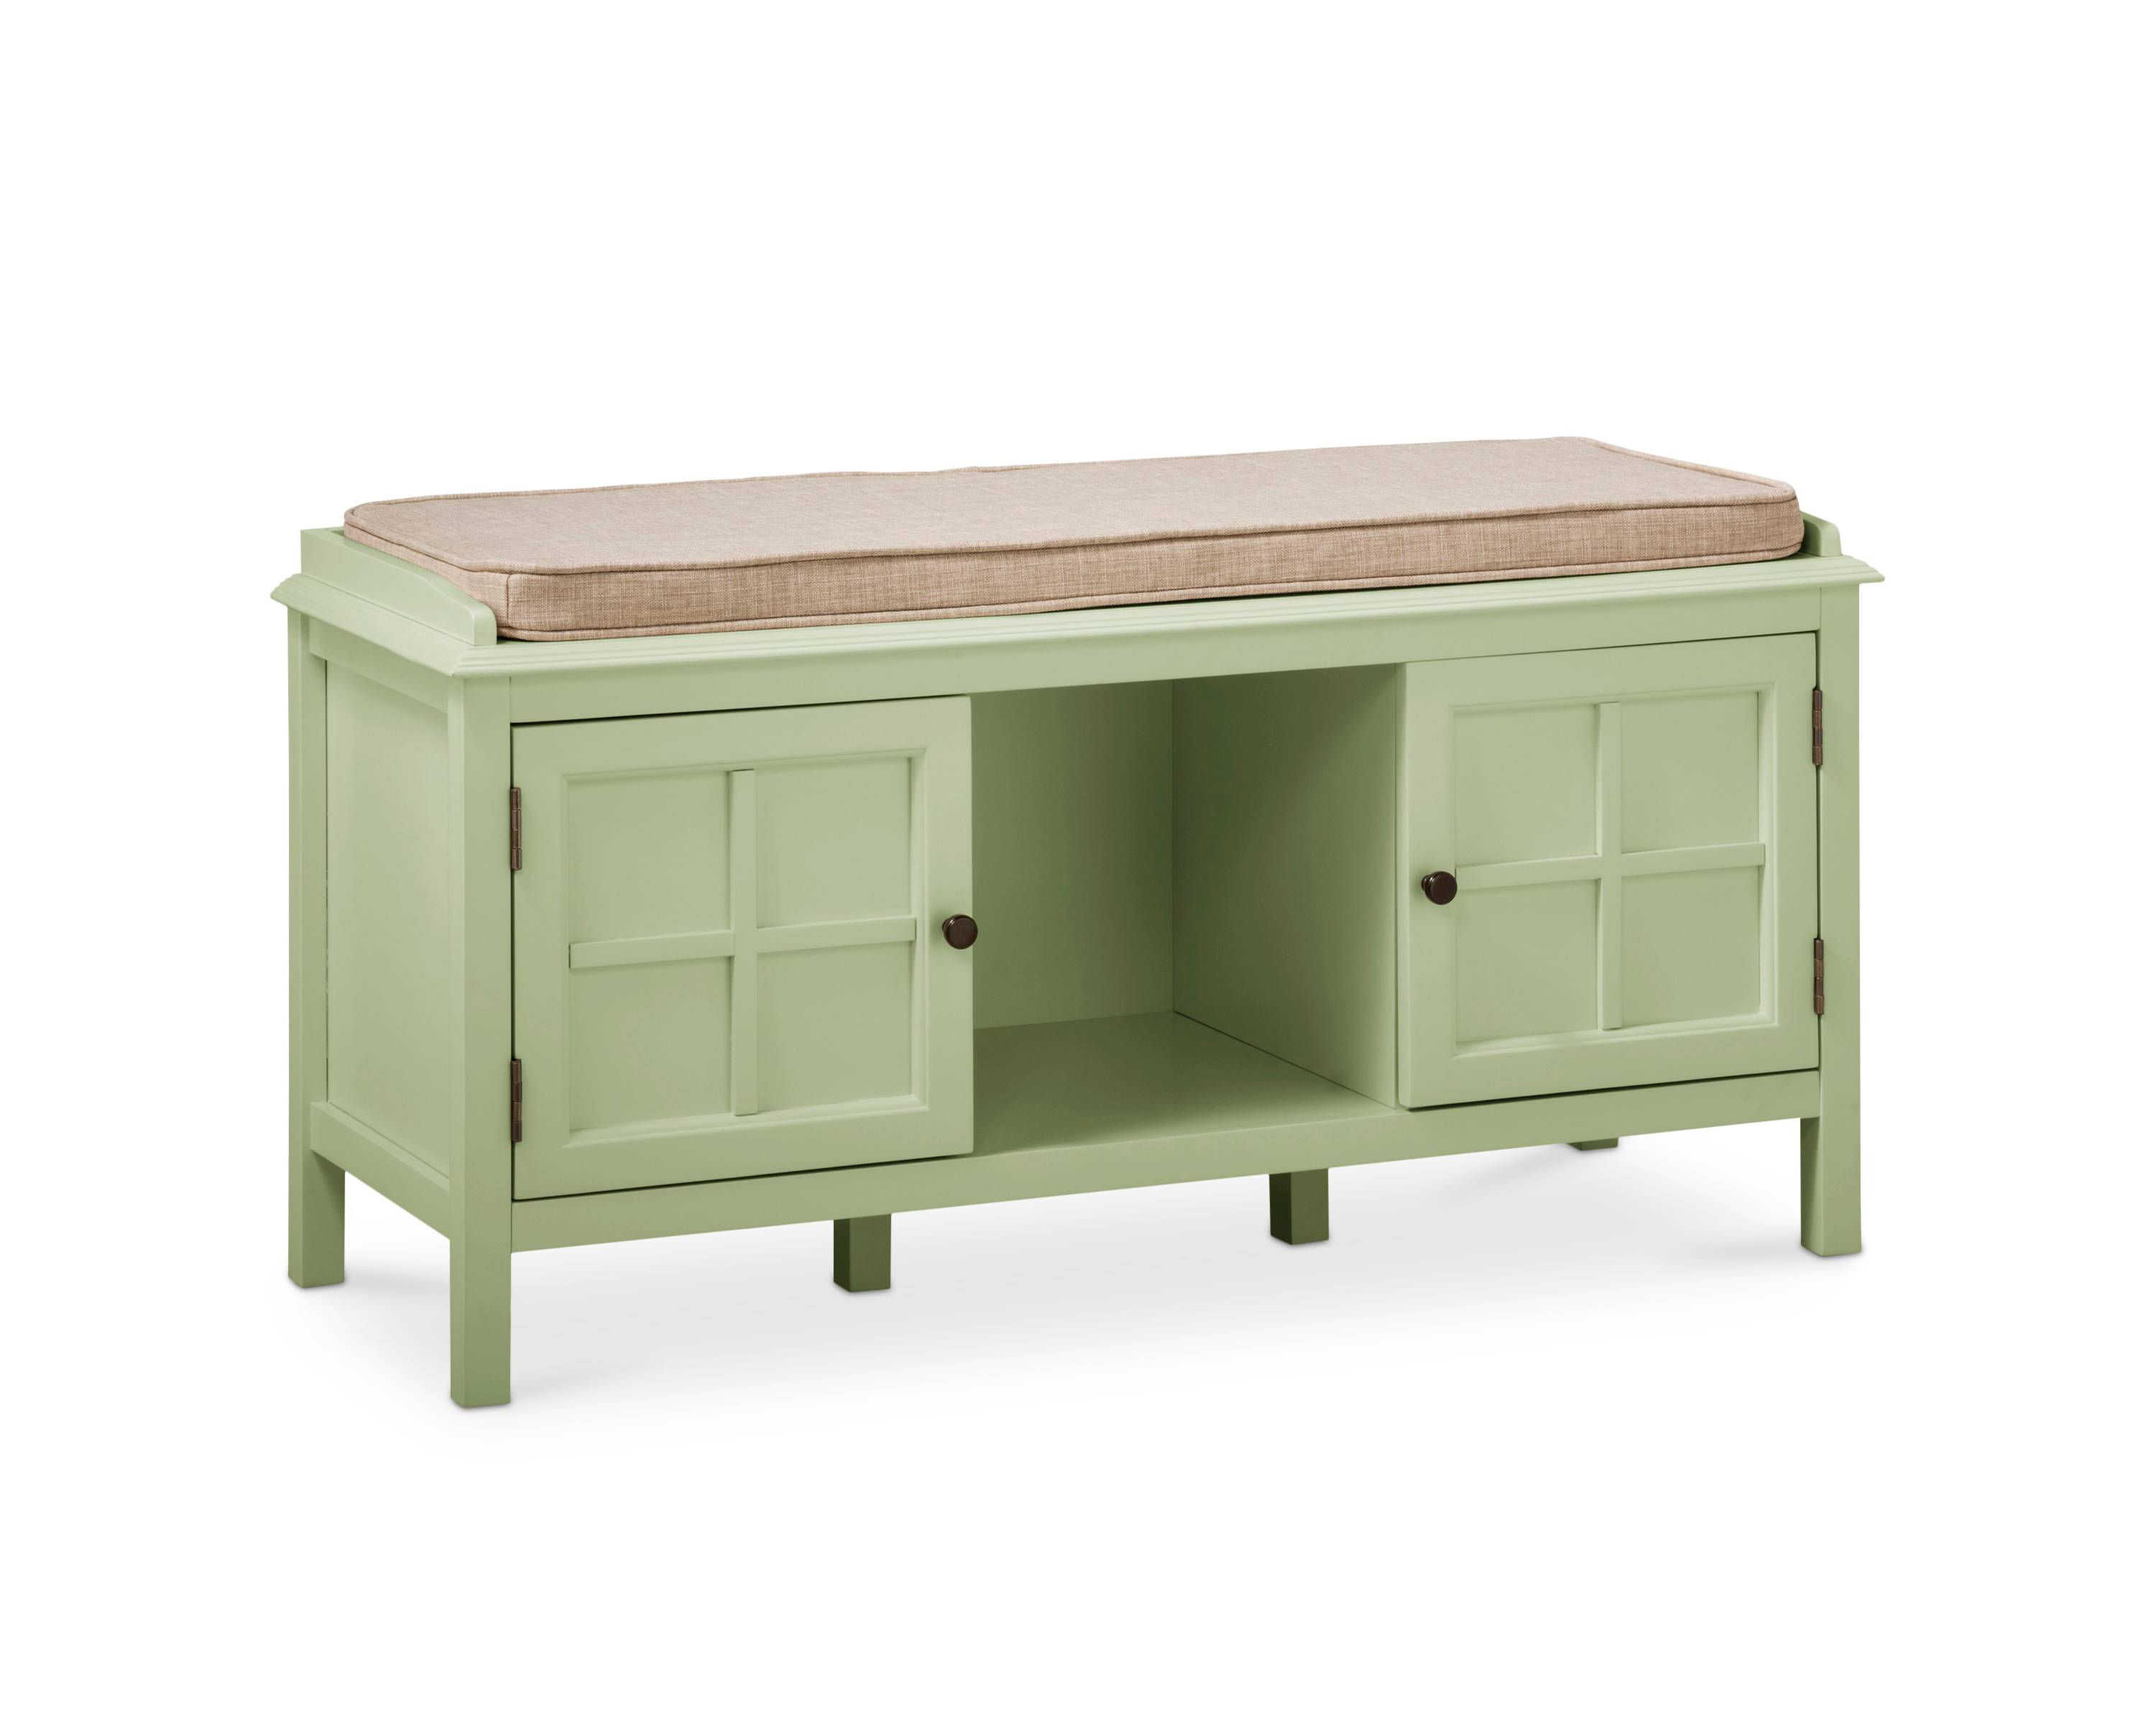 This bench is a perfect entryway table because of the functionality of it. Love the storage!